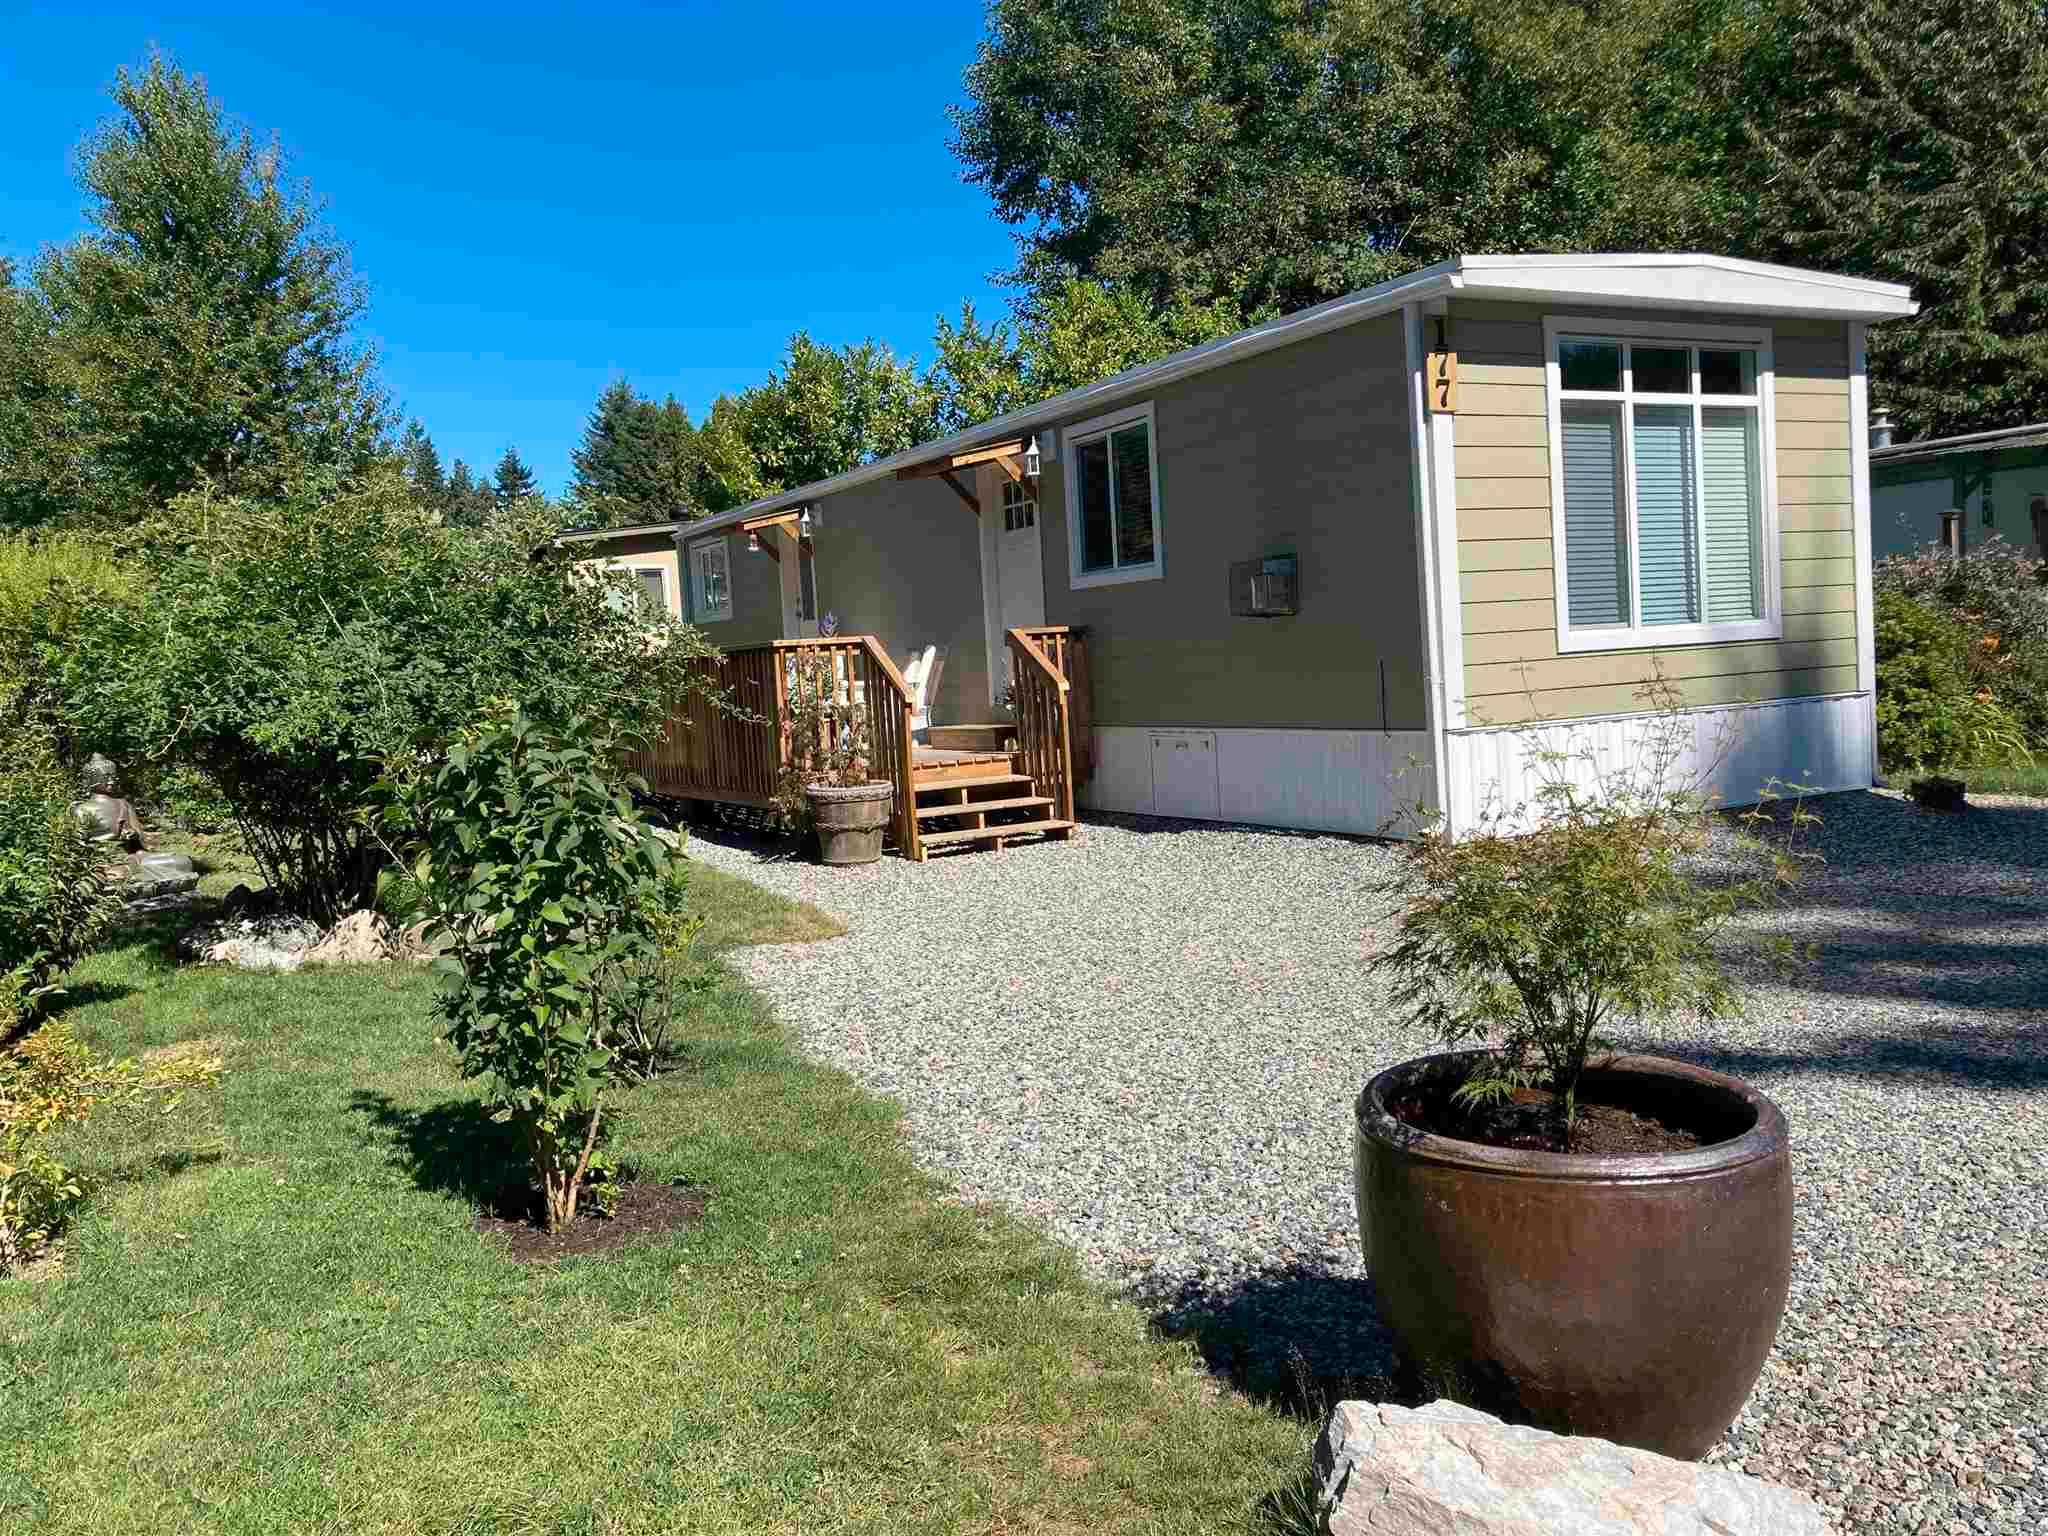 """Main Photo: 177 1413 SUNSHINE COAST Highway in Gibsons: Gibsons & Area Manufactured Home for sale in """"THE POPLARS"""" (Sunshine Coast)  : MLS®# R2604177"""